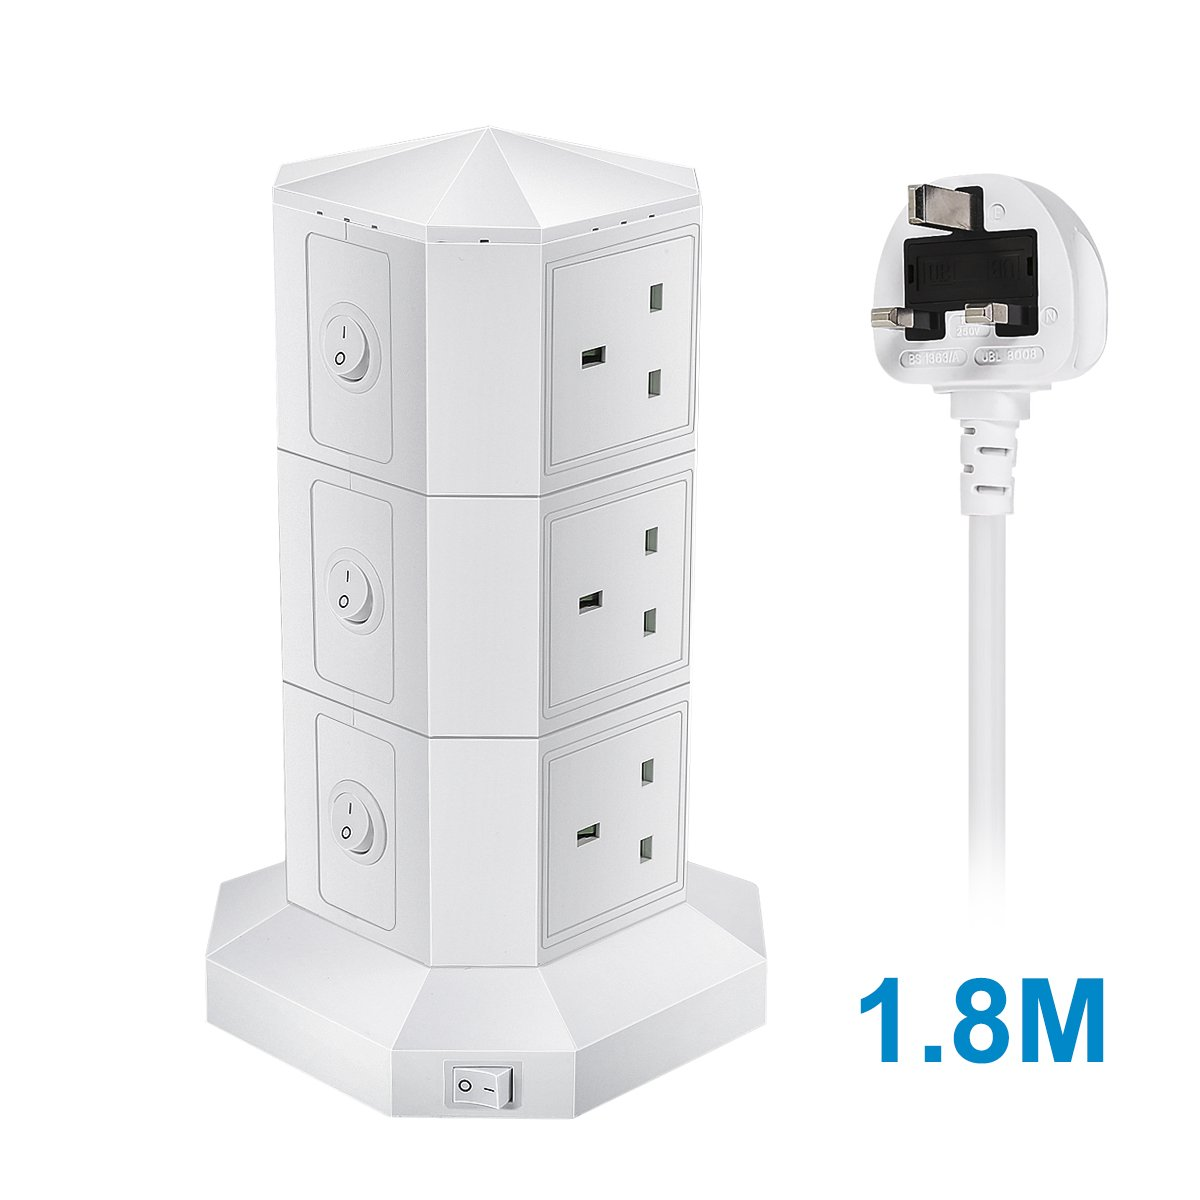 70% off GreenClick Extension Lead, Power strip with 9 Smart USB Ports 6 Way Outlets